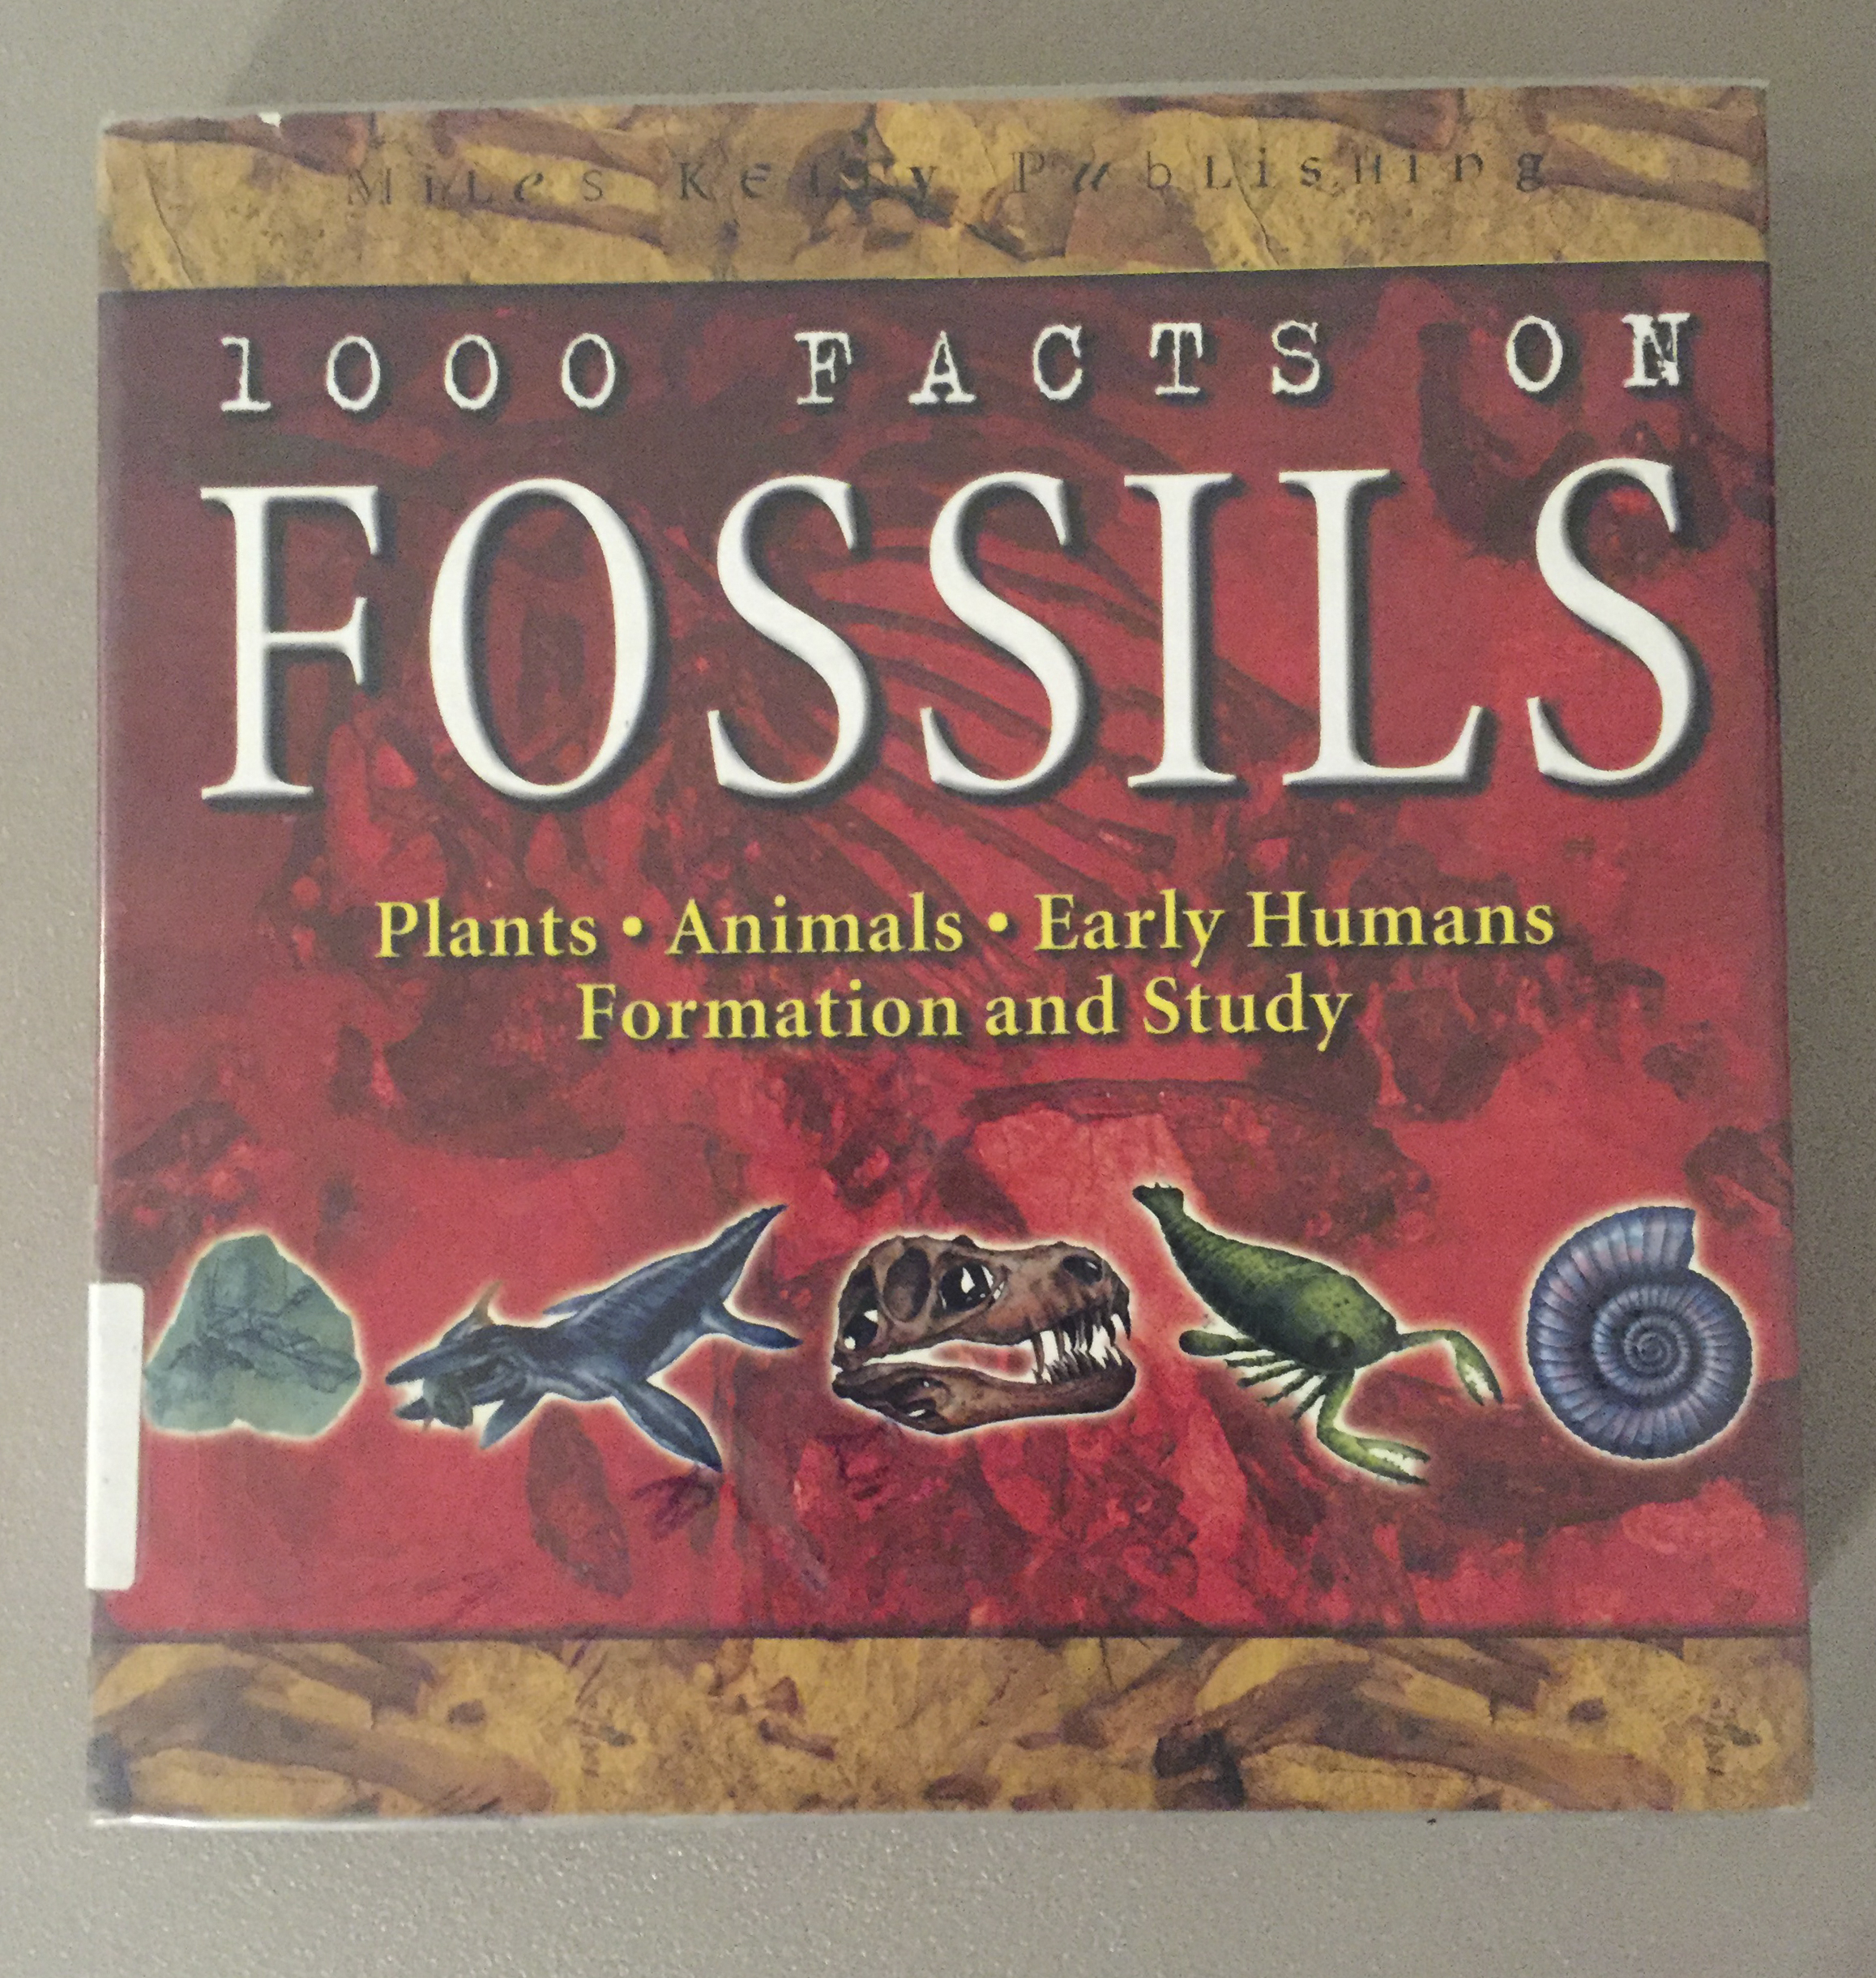 1000 Facts on Fossils -Book by Chris Pellant and Helen Pellant